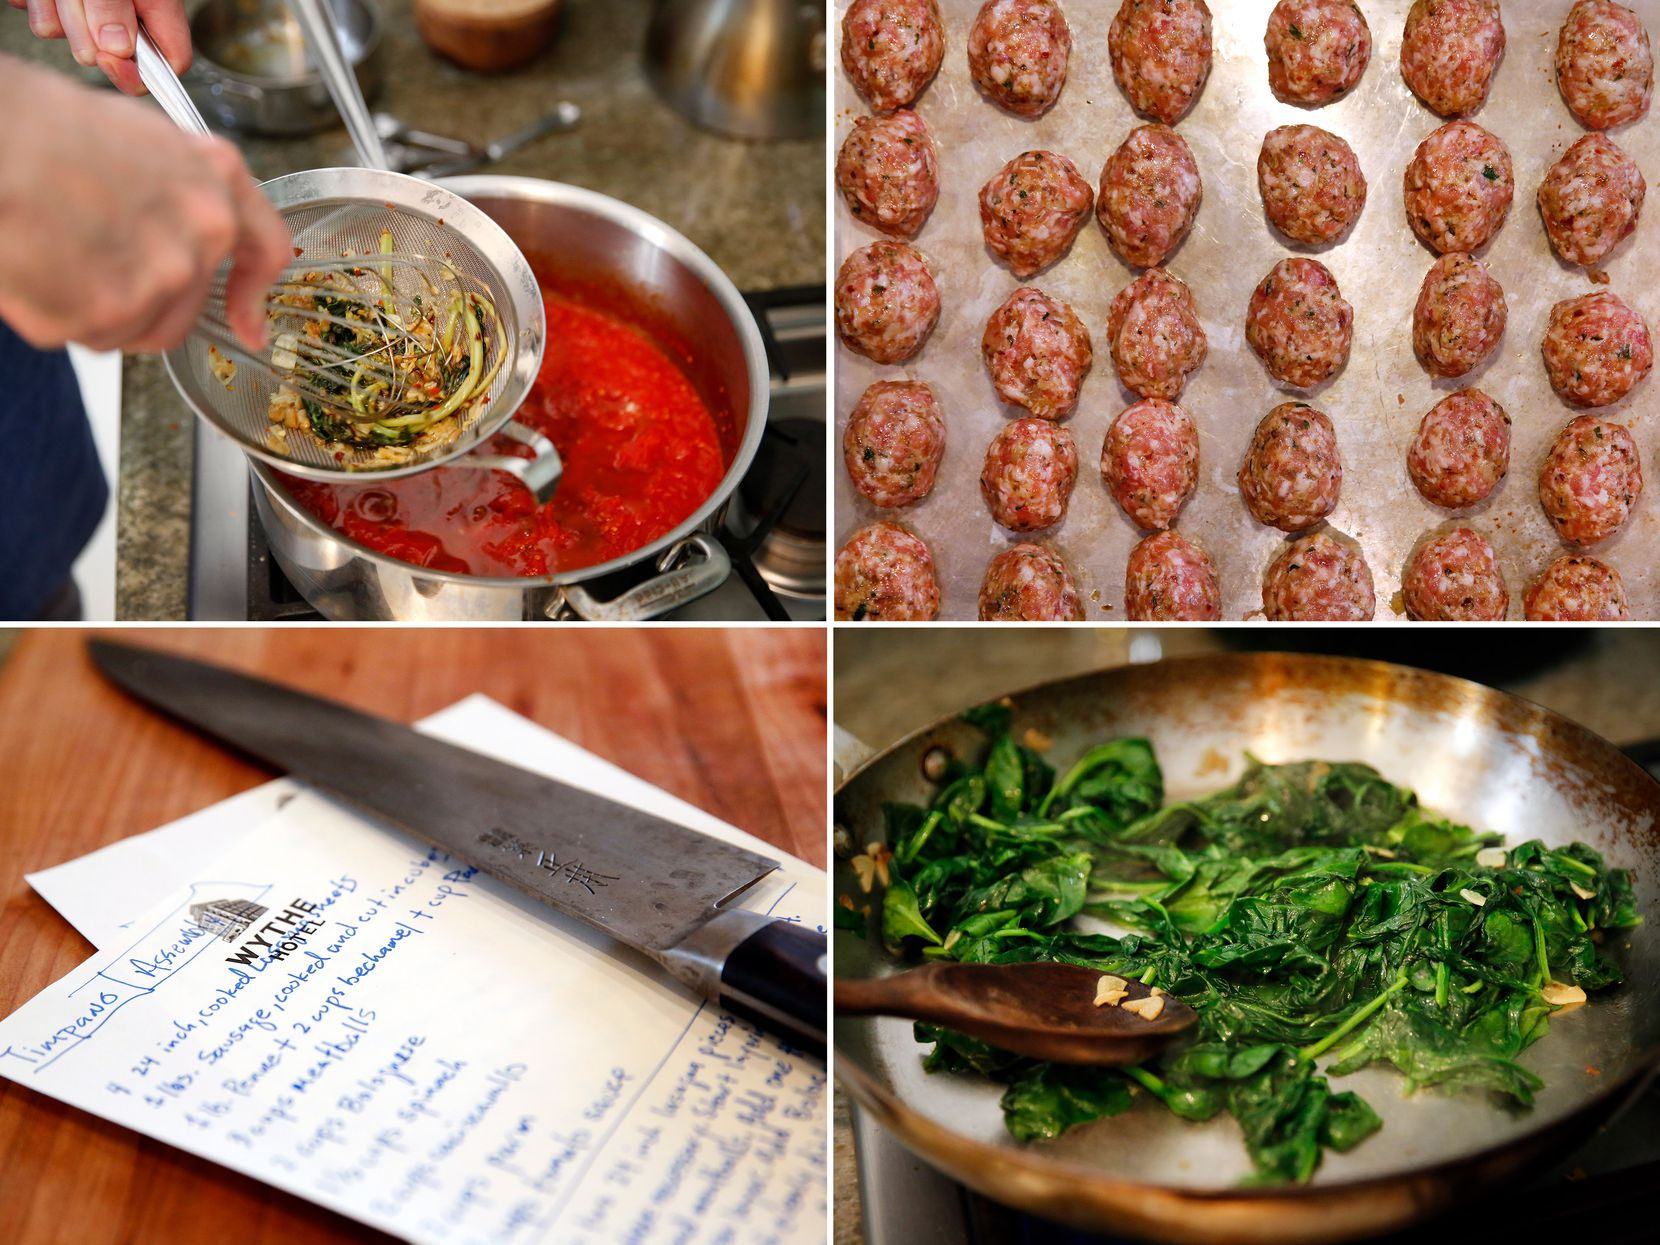 Clockwise from top left: Julian Barsotti strains bail-garlic oil into tomato sauce; chicken-pork belly meatballs; sauteing spinach; Barsotti's handwritten recipe (Tom Fox/Staff Photographer)